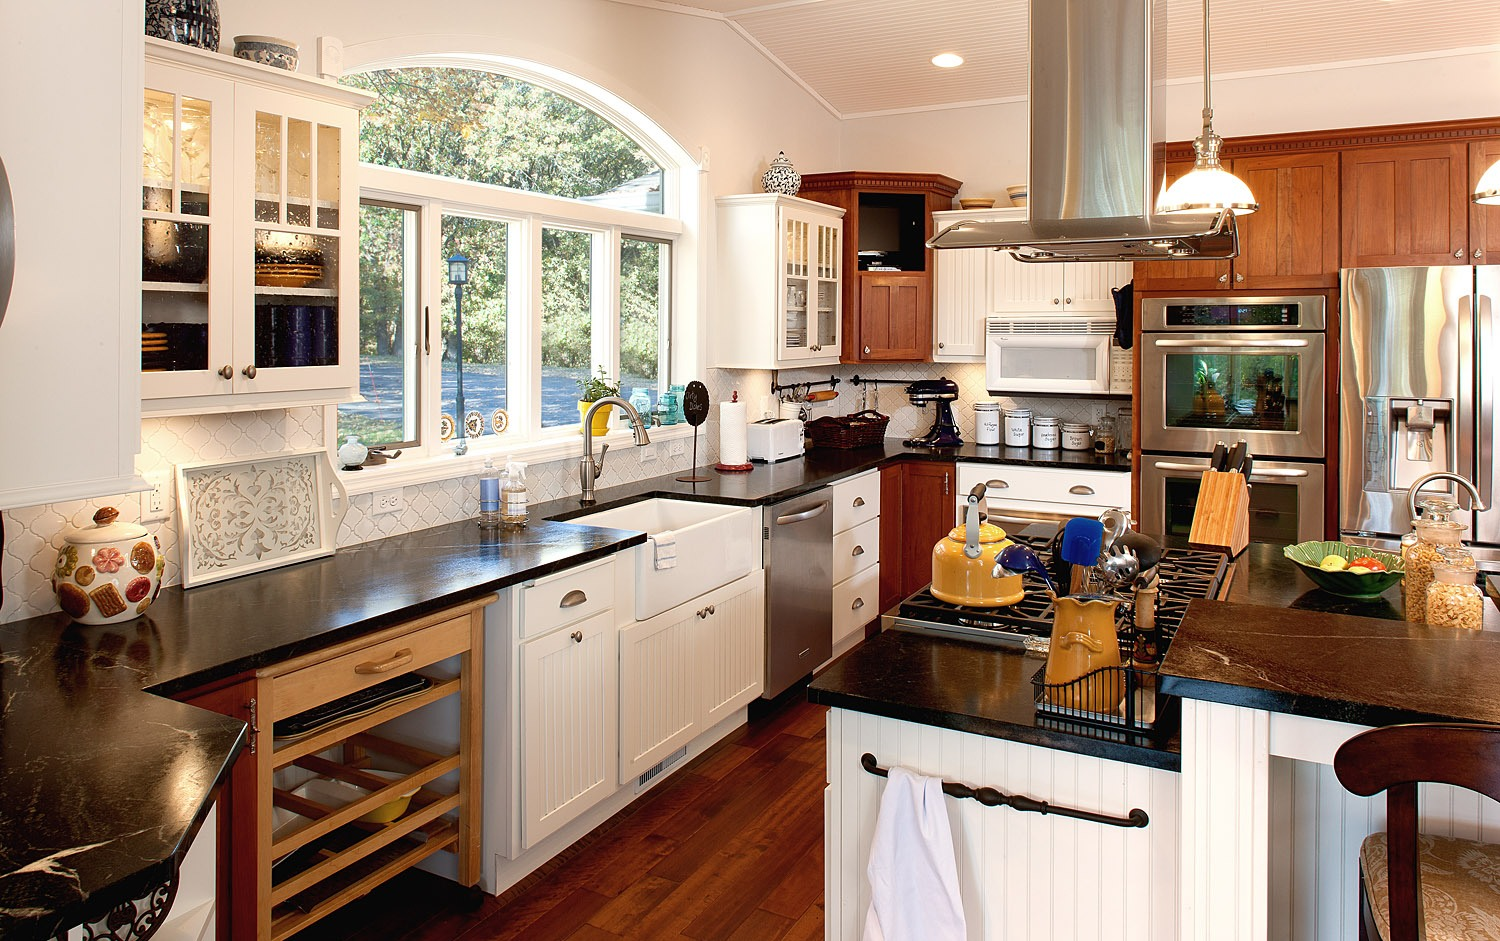 35 beautiful transitional kitchen examples for your Transitional kitchen designs photo gallery